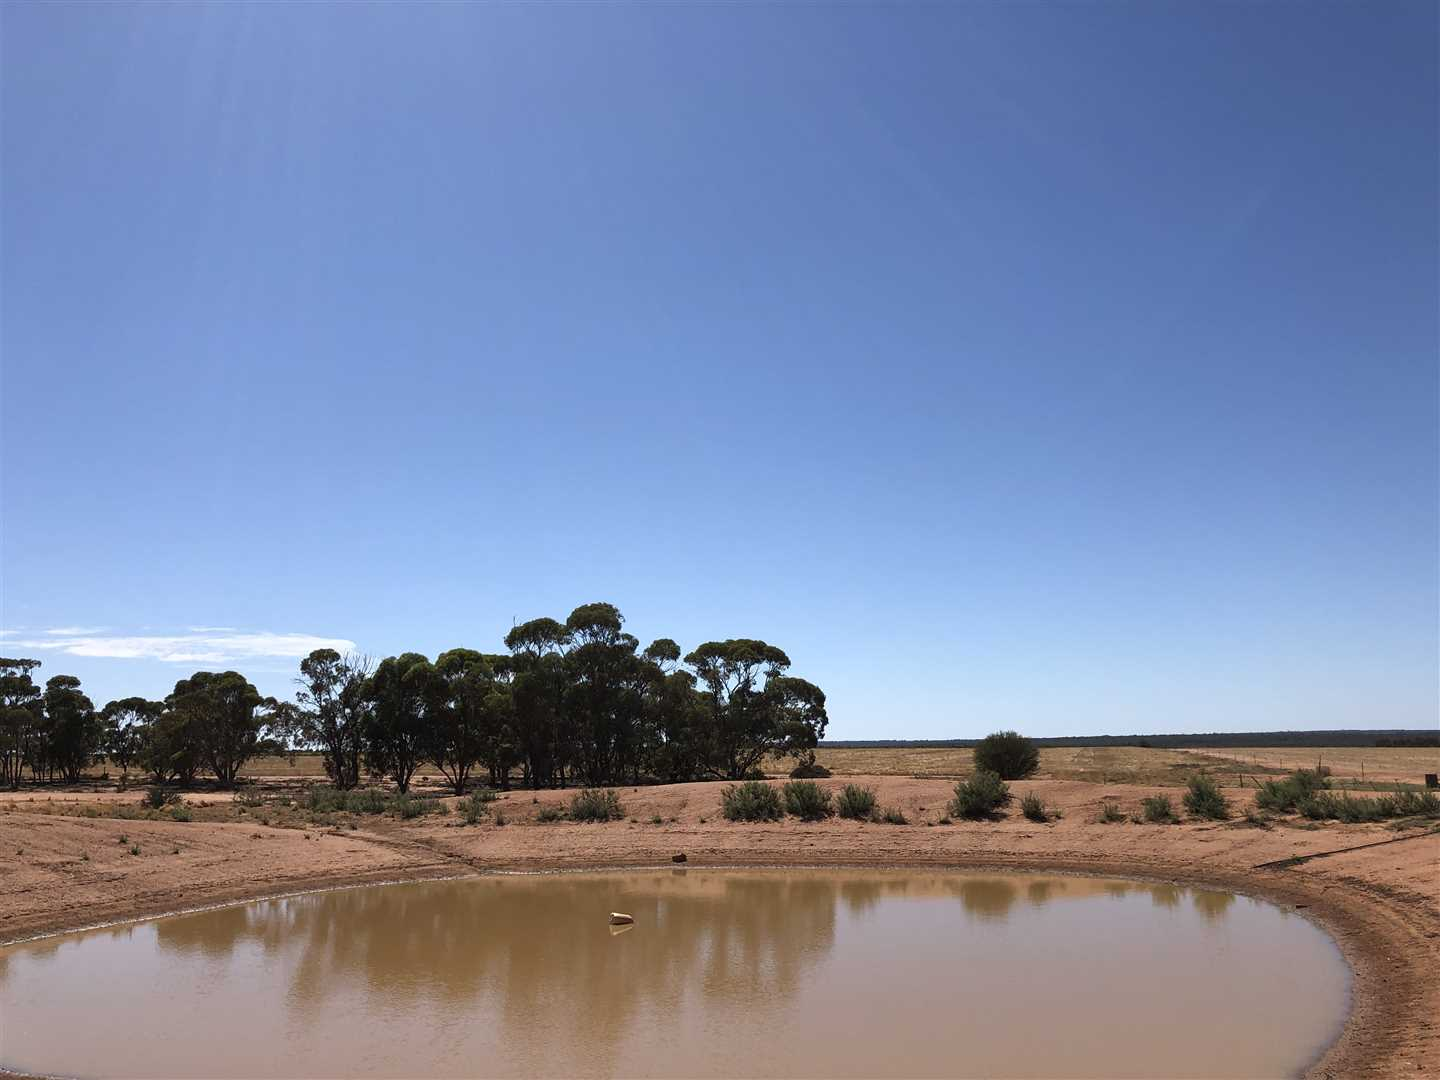 'Adams'      (2,580 ha / 6,375 ac)